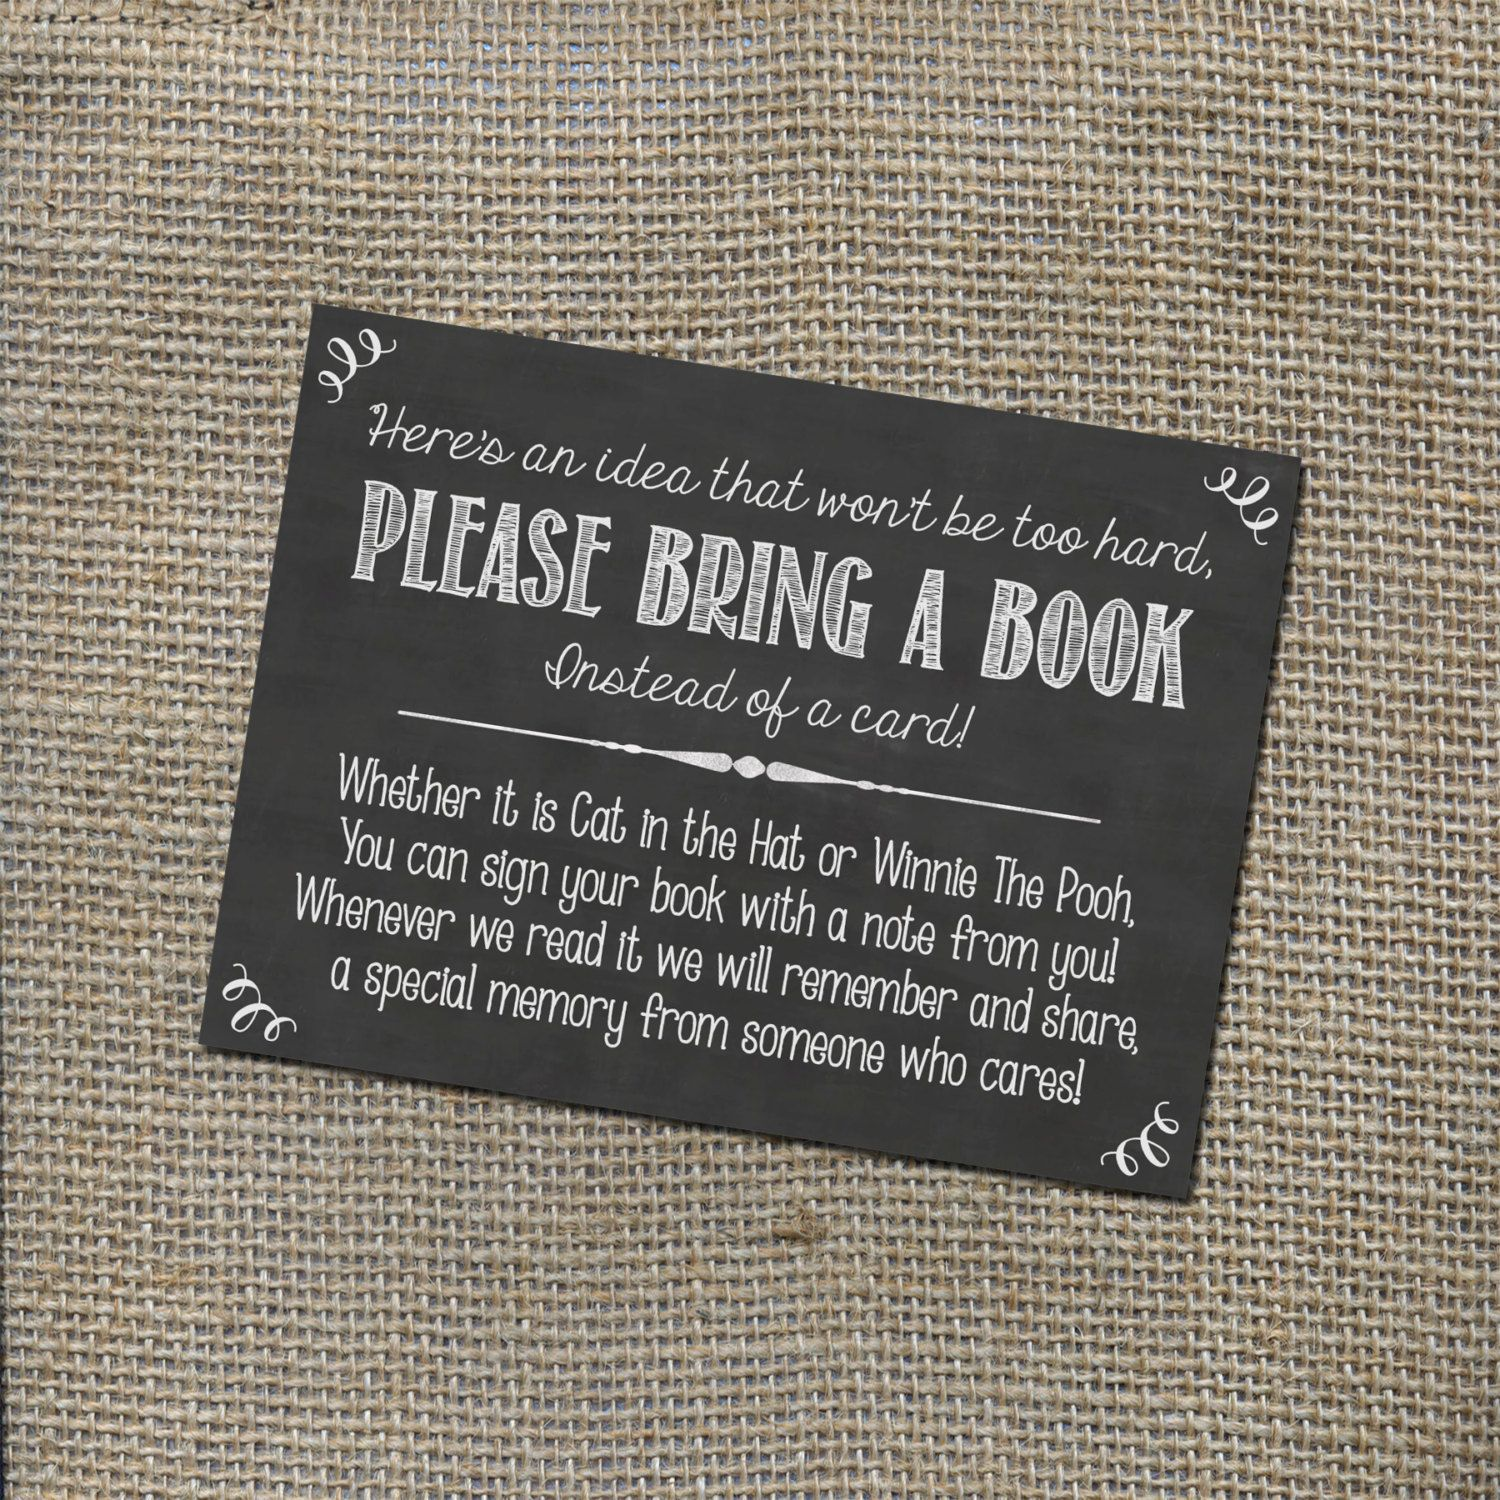 Please Bring a Book Instead of a Card Insert for by World Thought